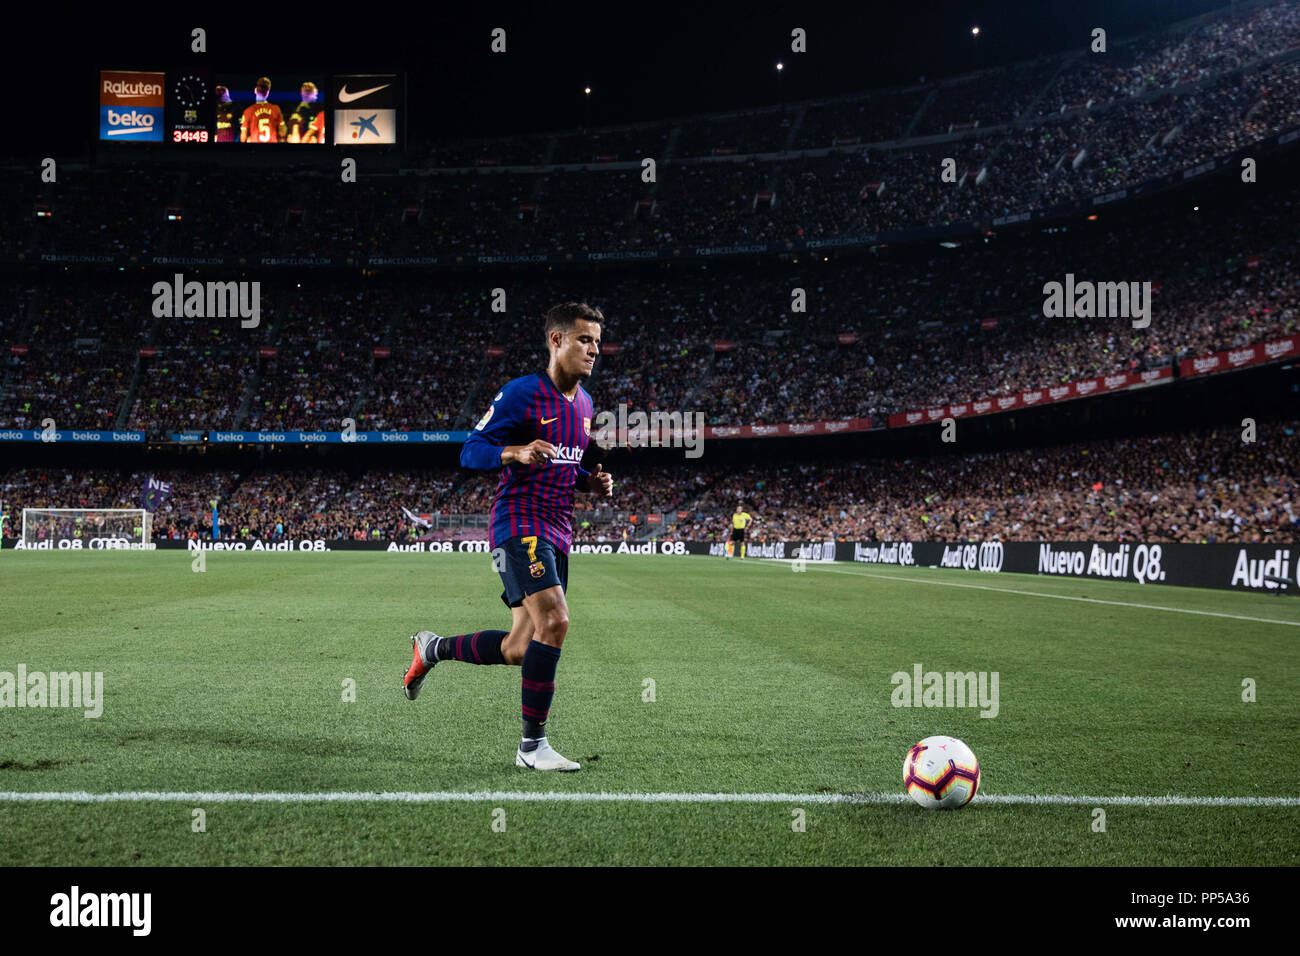 Barcelona, Spain. 23rd September, 2018. during the La Liga game between FC Barcelona against Girona in Camp Nou Stadium at Barcelona, on 23 of September of 2018, Spain. 23rd Sep, 2018. Credit: AFP7/ZUMA Wire/Alamy Live News - Stock Image